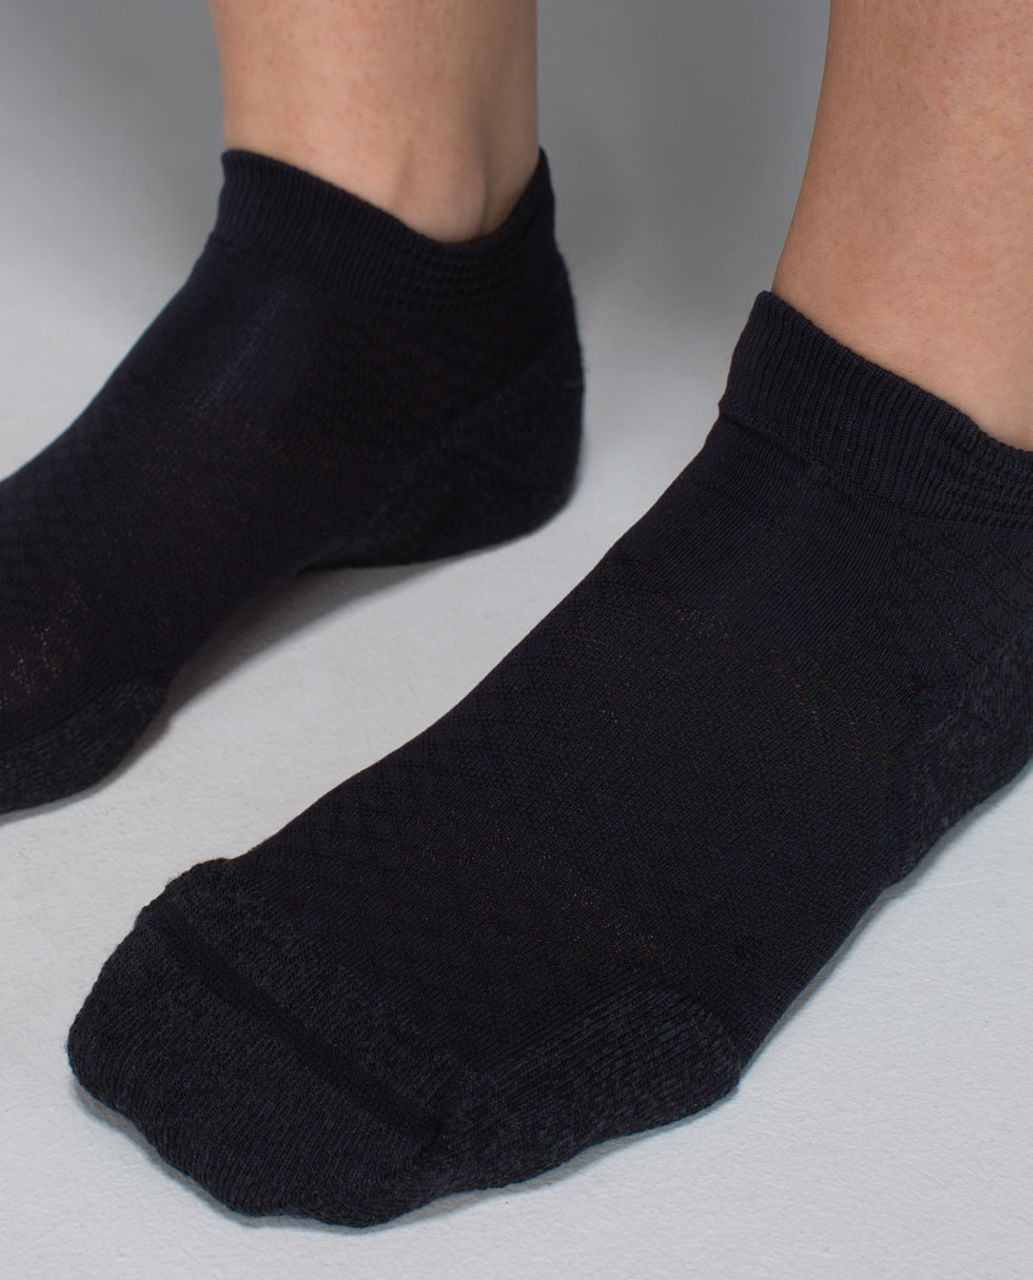 Lululemon Women's Ultimate Padded Run Sock - Black